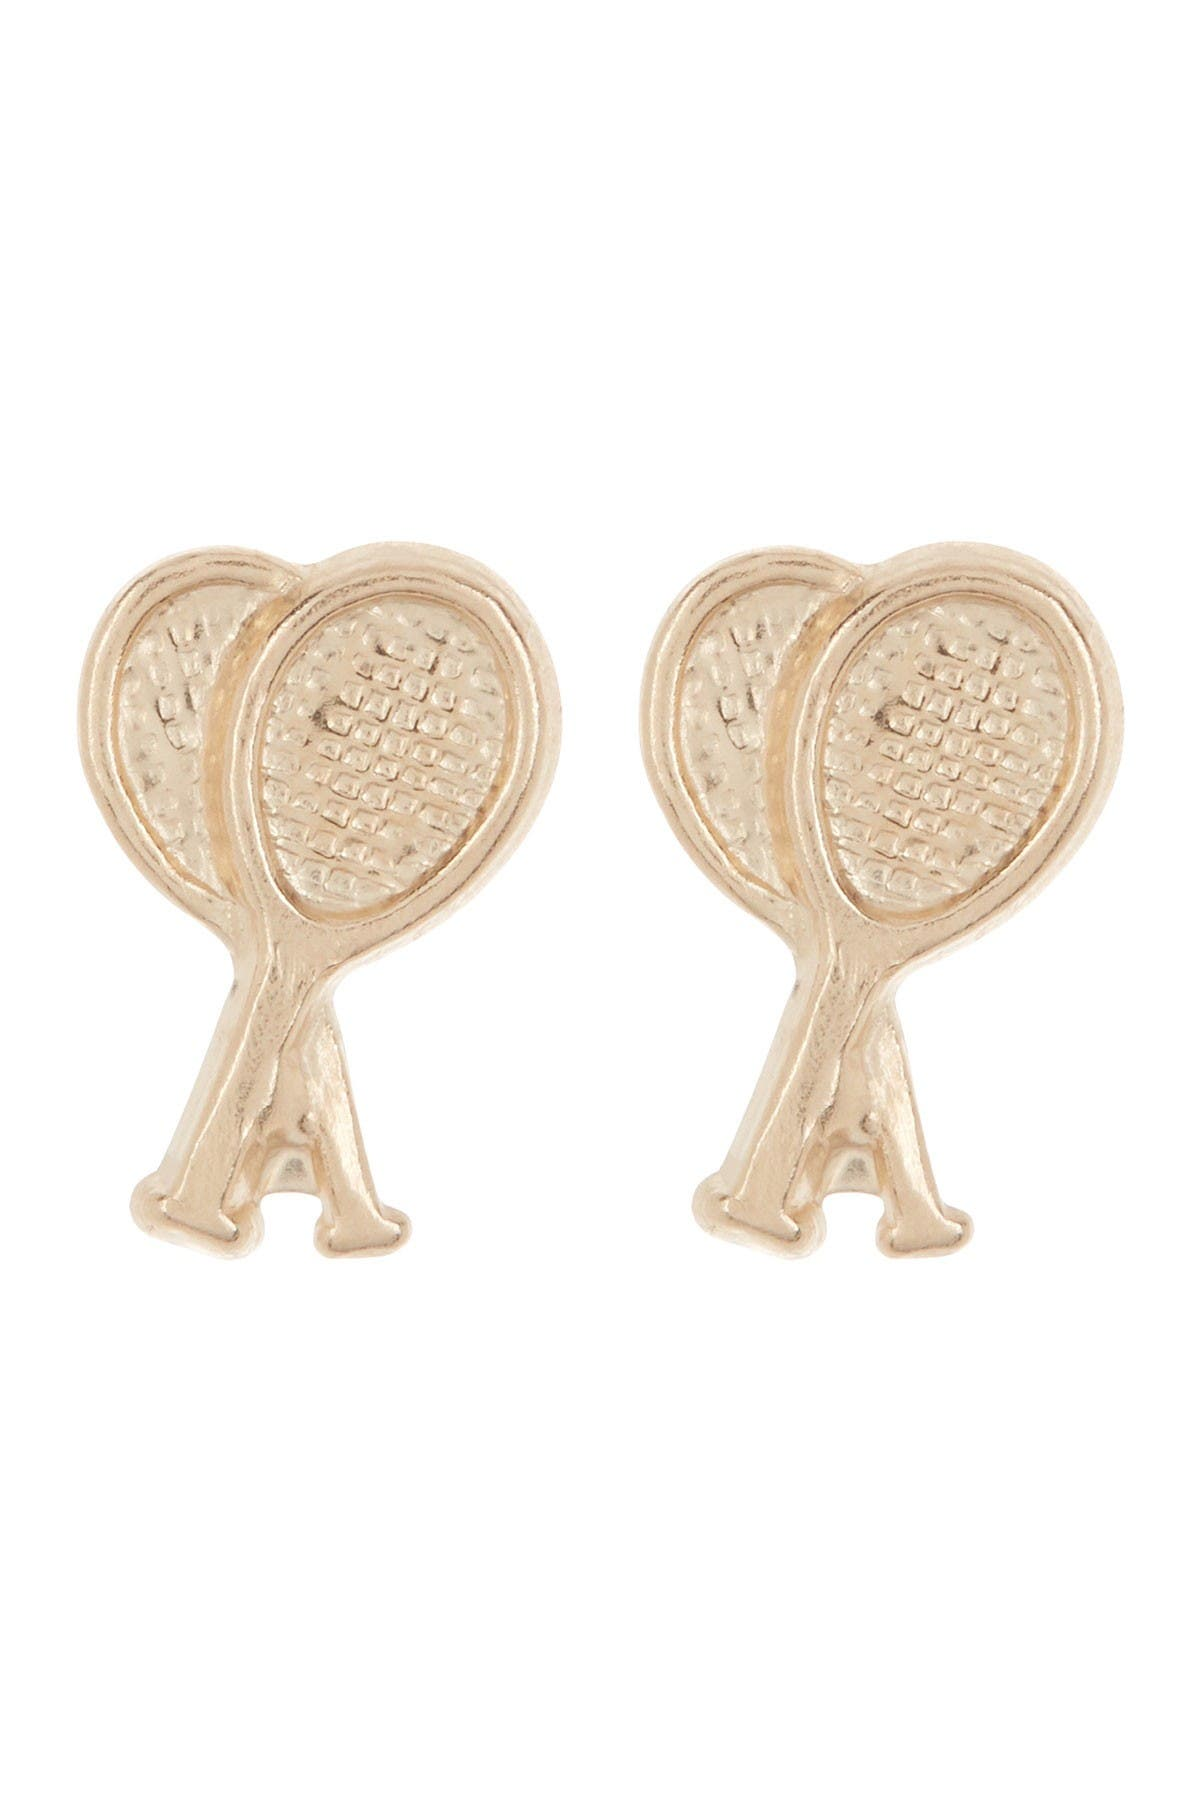 Image of Candela 10K Yellow Gold Tennis Racquet Stud Earrings